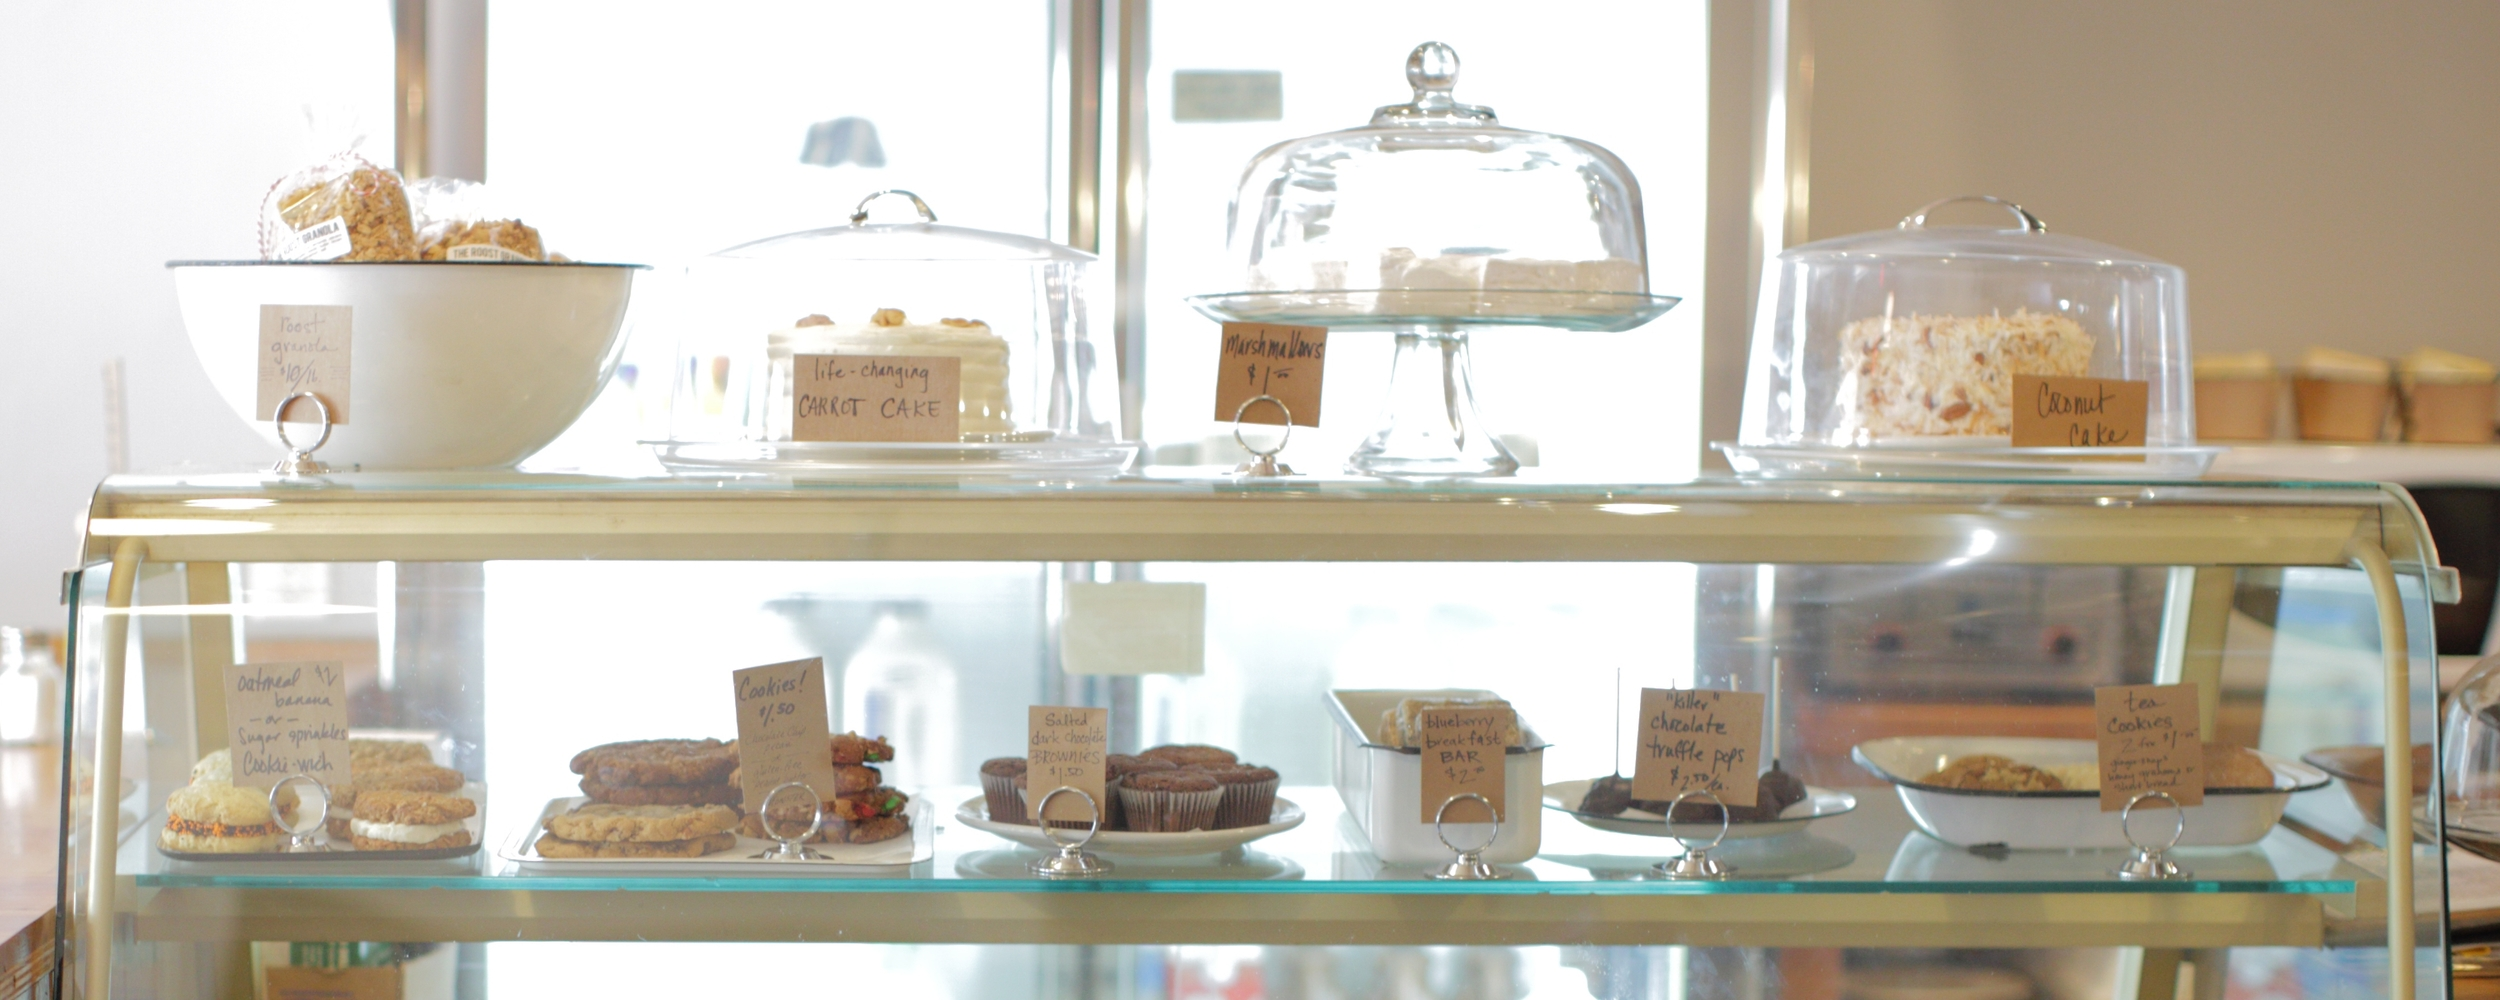 Bakery case. Photo: Jane Kortright